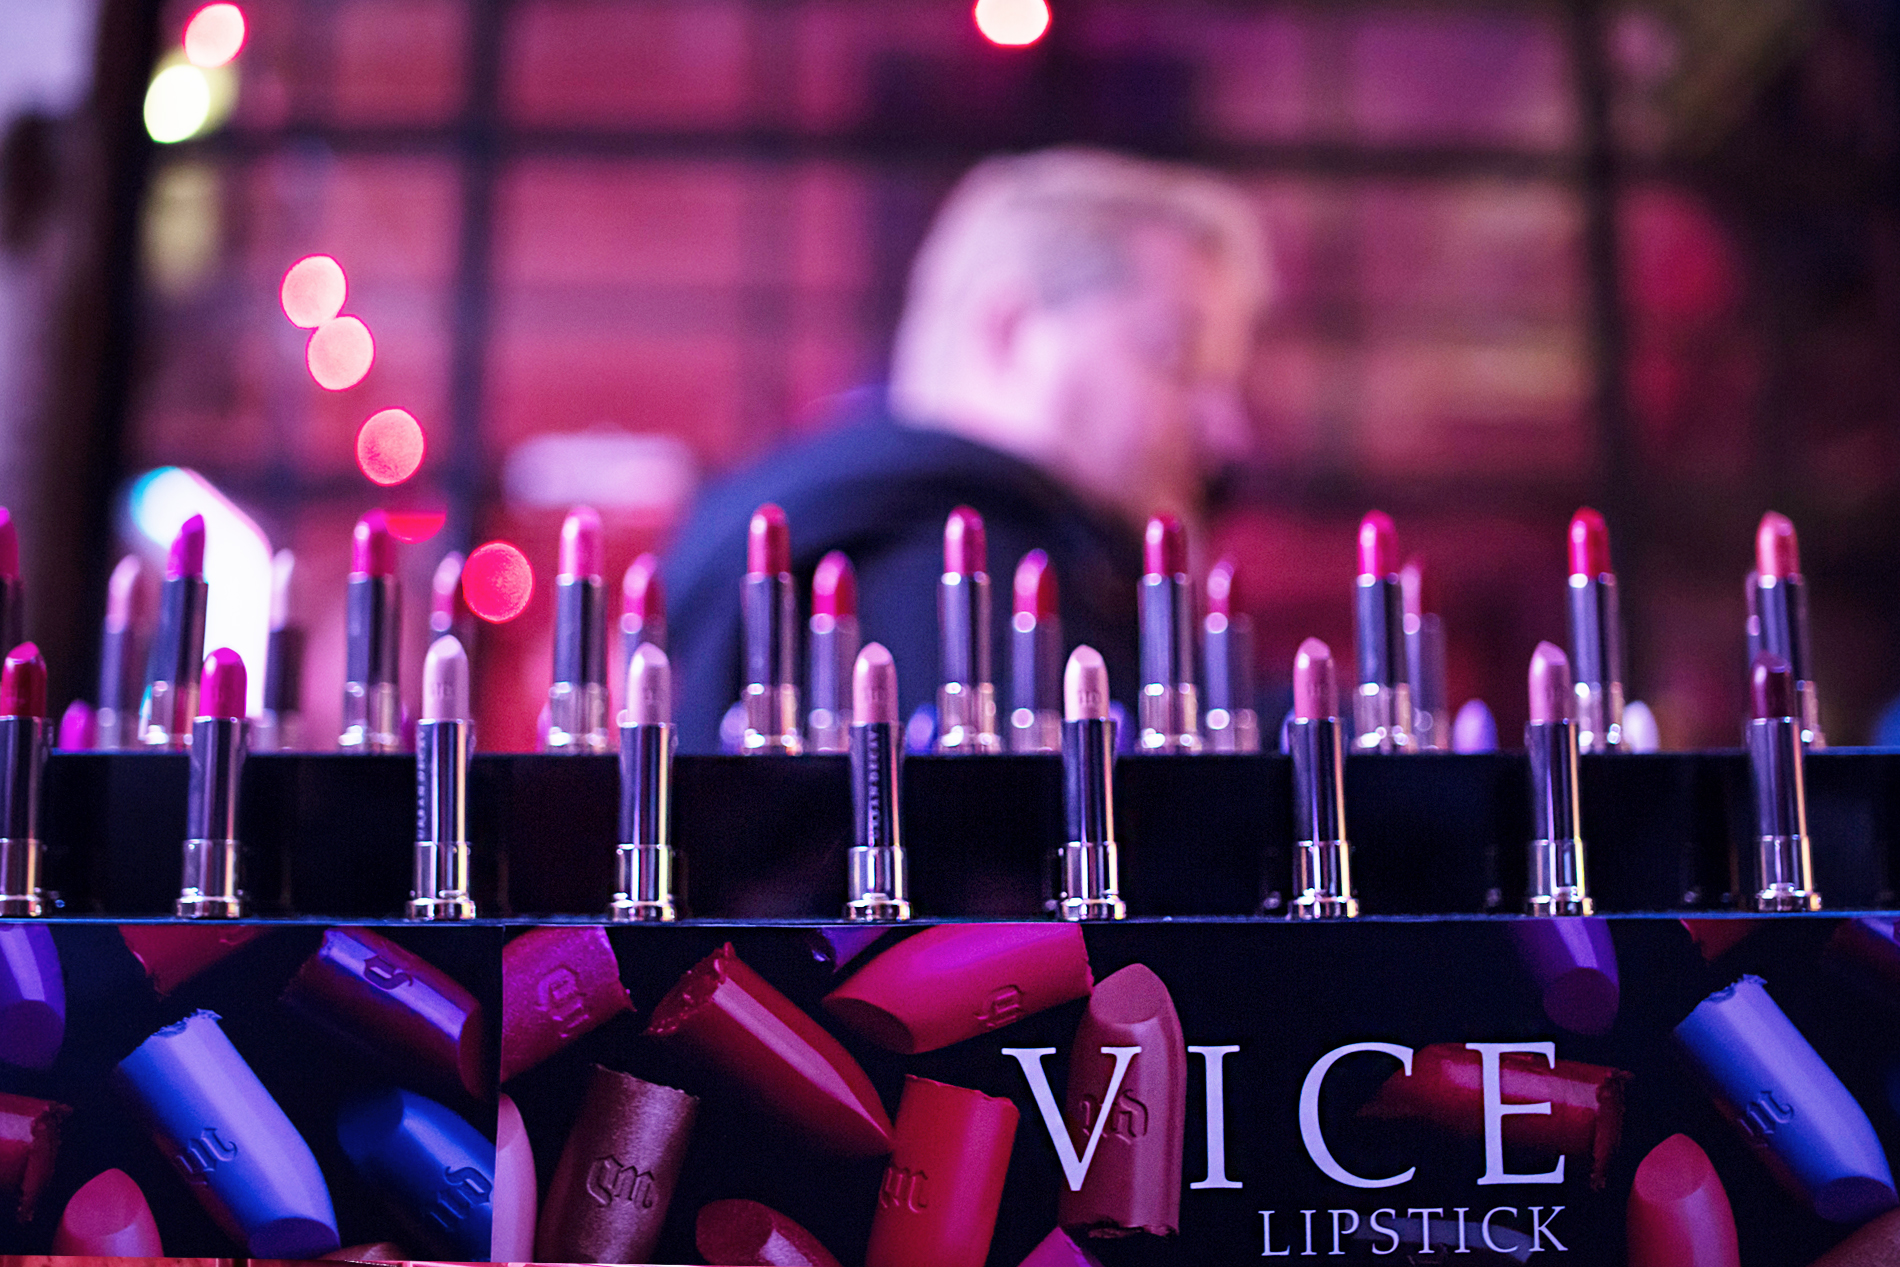 lipstickismyvice ruby rose new york city event urban decay lipstick party backyard industrial party brooklyn beauty beautyblogger makeup rock'n'roll chic fashionblogger germany cats & dogs ricarda schernus blogger 4